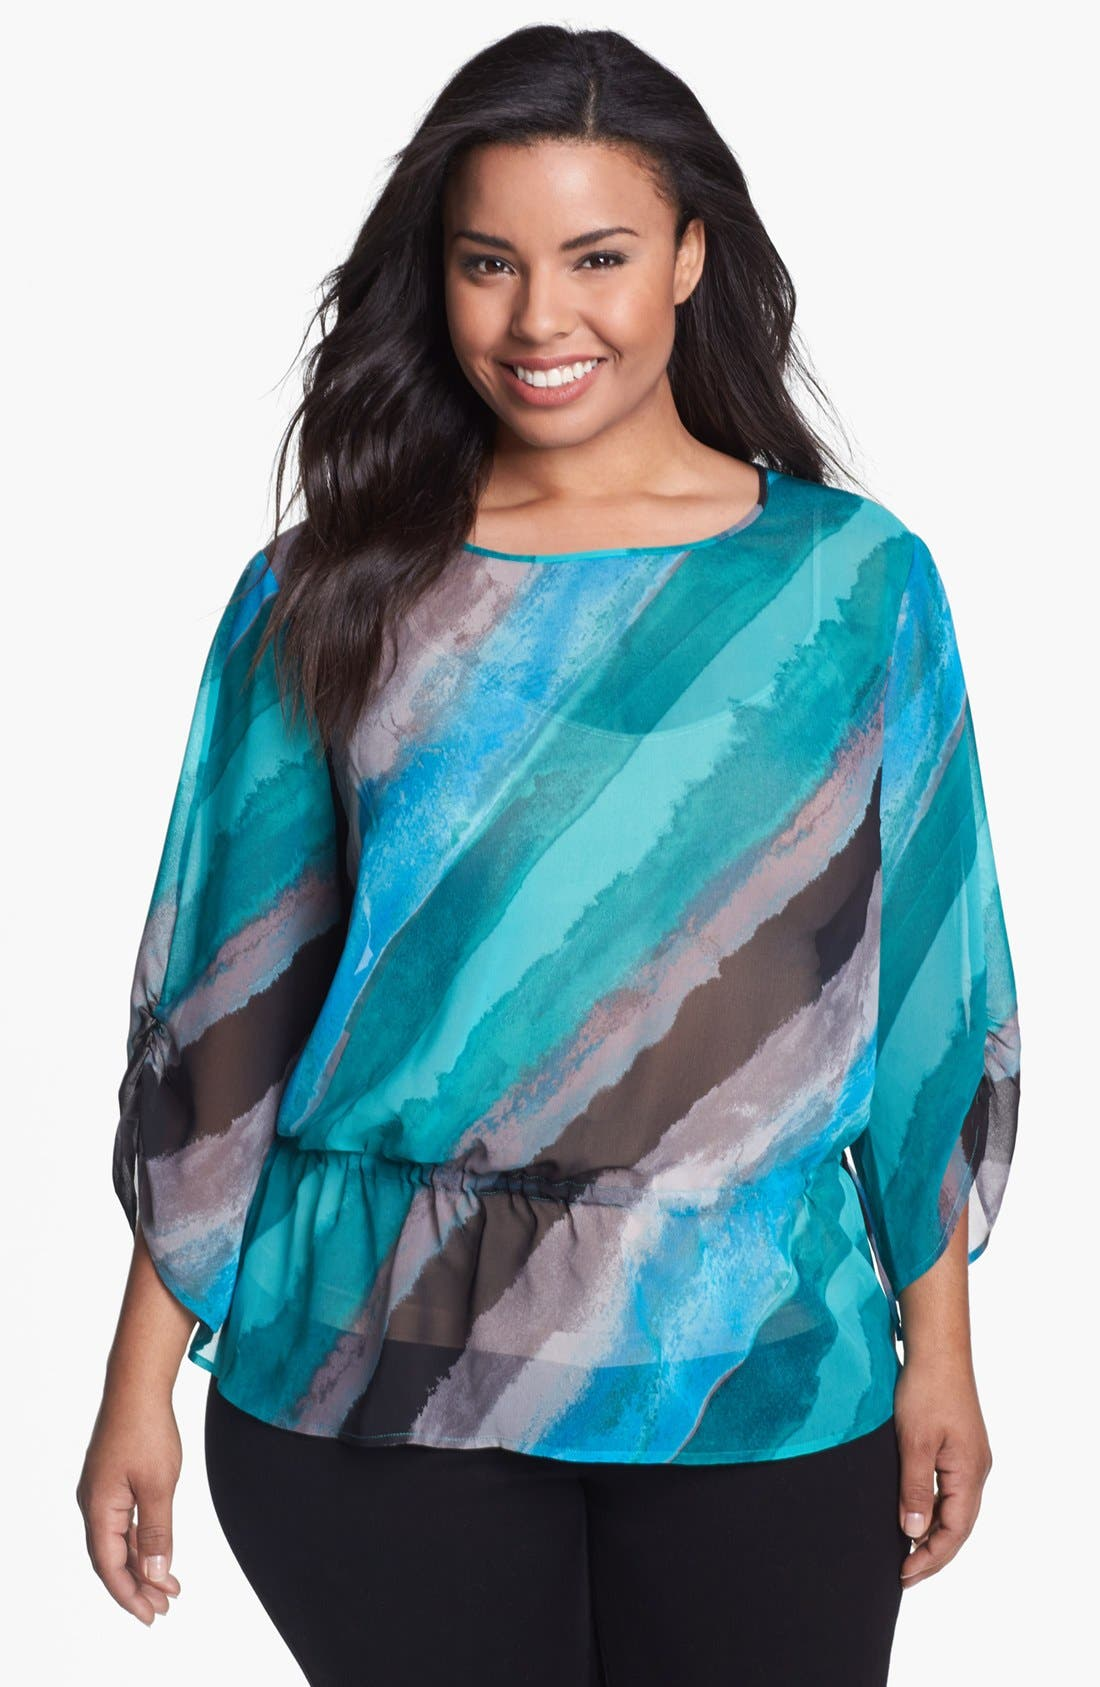 Alternate Image 1 Selected - Sejour Print Chiffon Top (Plus Size)